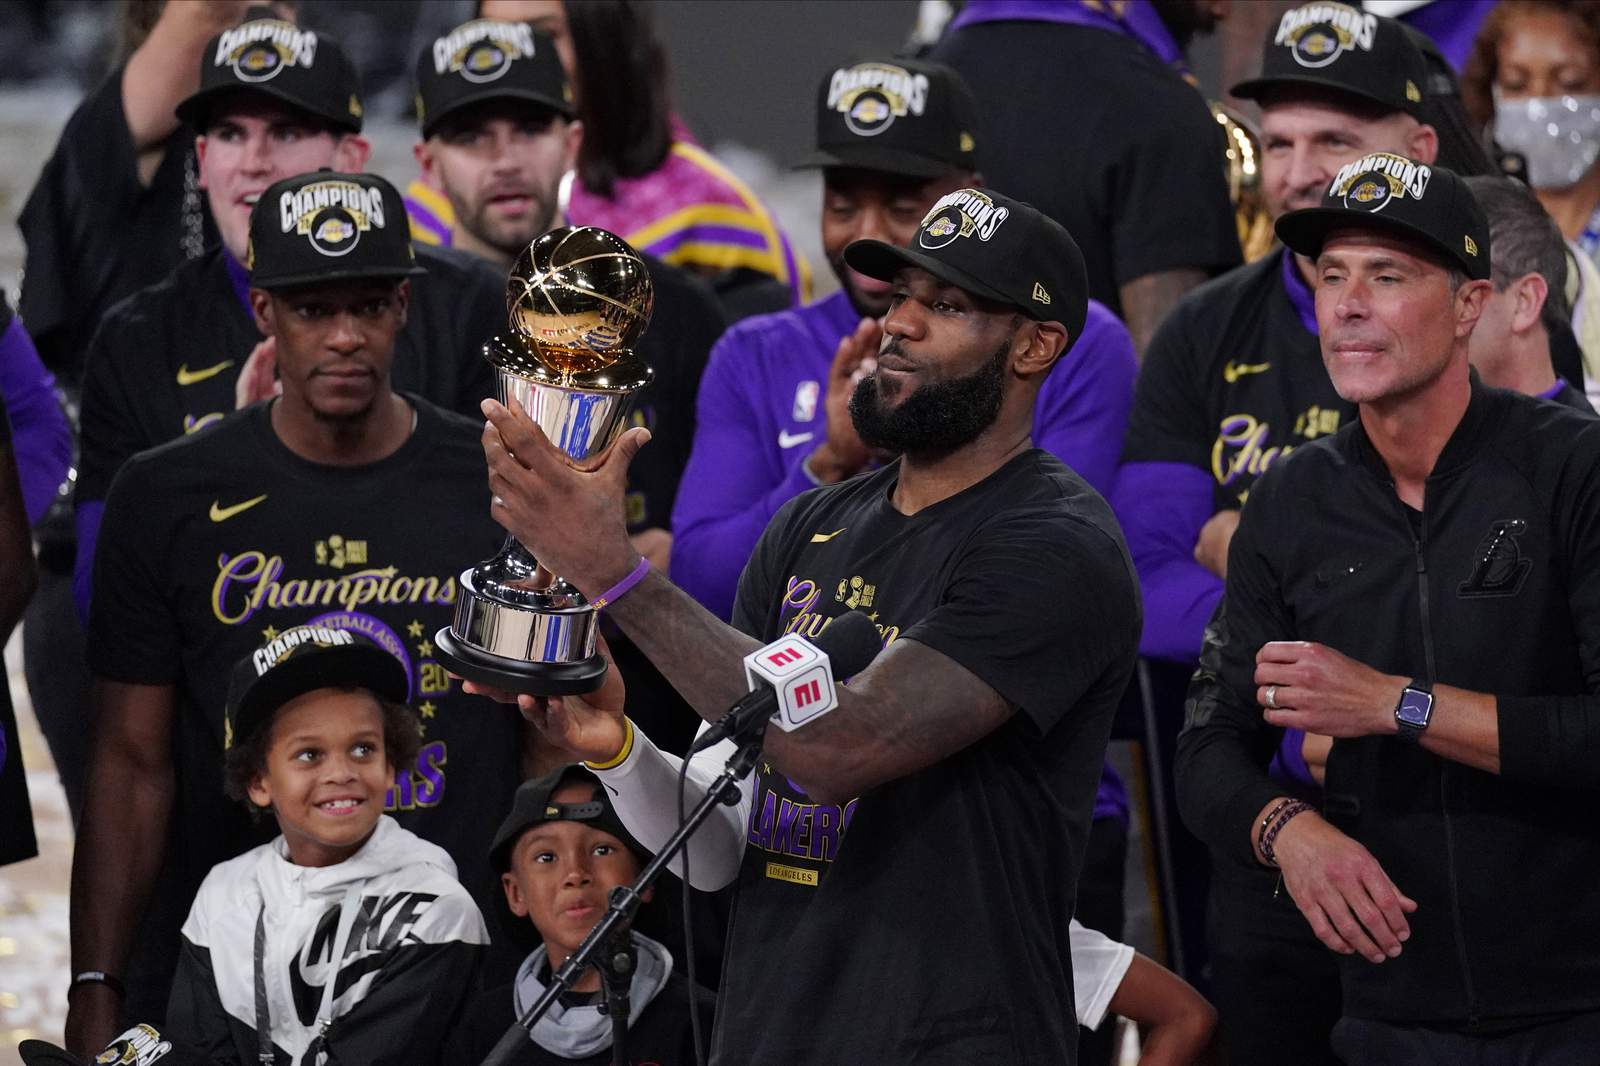 Lakers dominate Heat in Game 6 as LeBron James grabs 4th NBA title